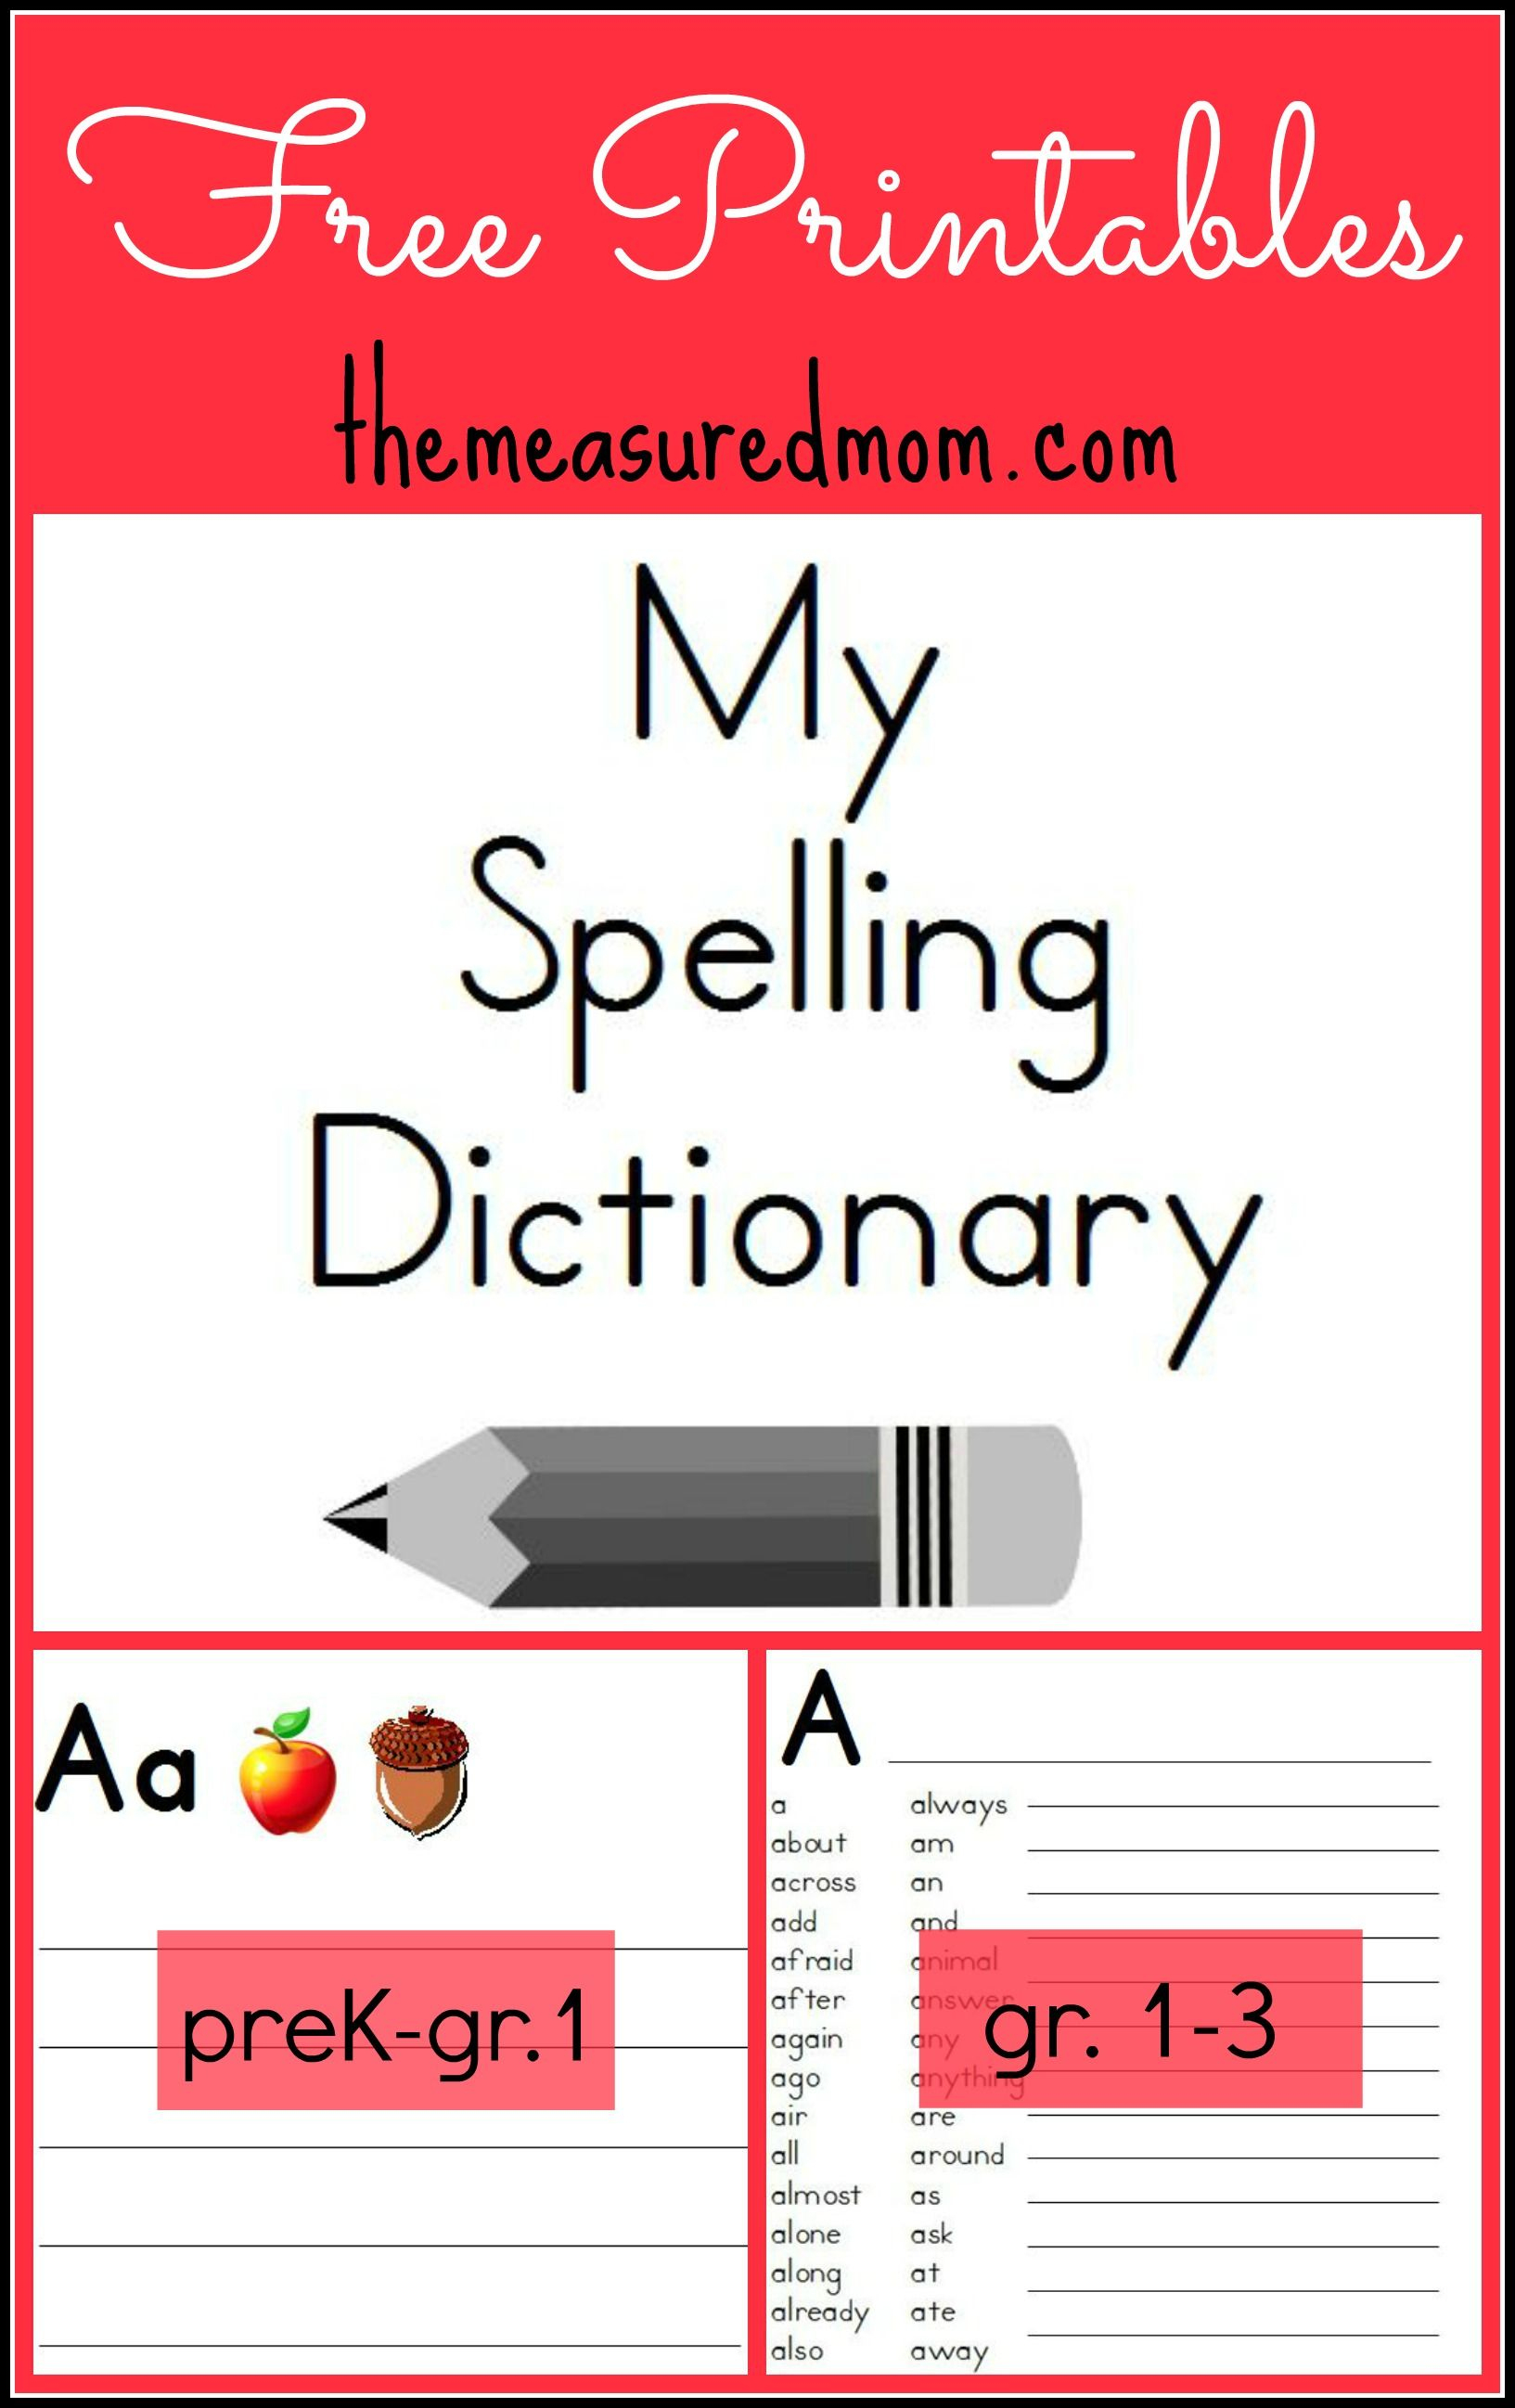 Printable Spelling Dictionary For Kids | For My Students | Escuela - My Spelling Dictionary Printable Free